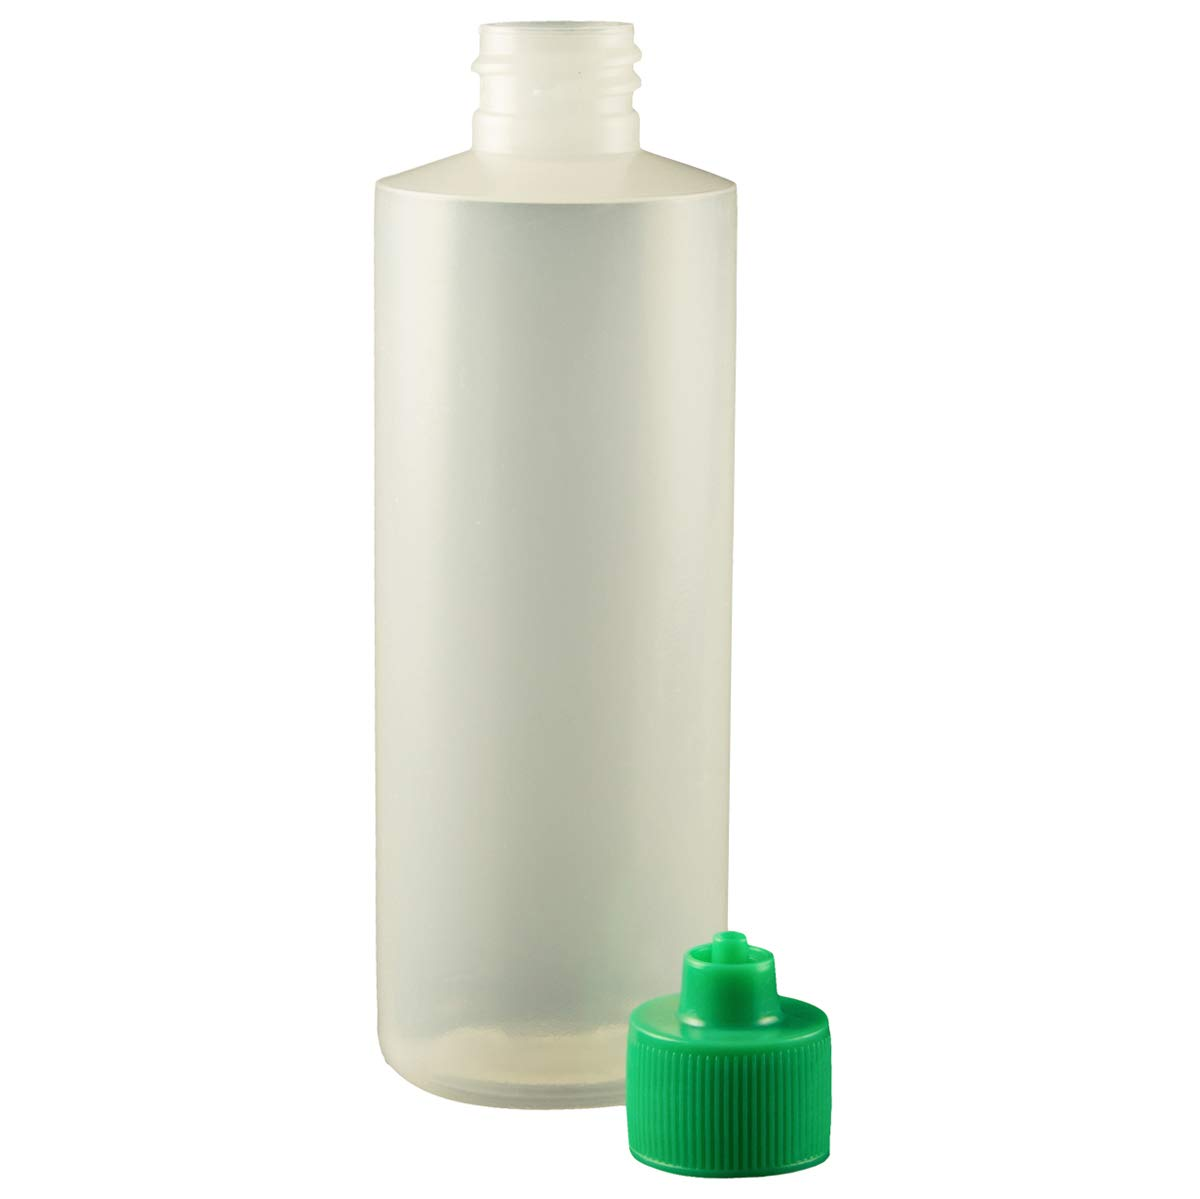 Jensen Global JG4.0BC-G Green 4 oz Cylinder Bottle & Cap Kit Bag of 10